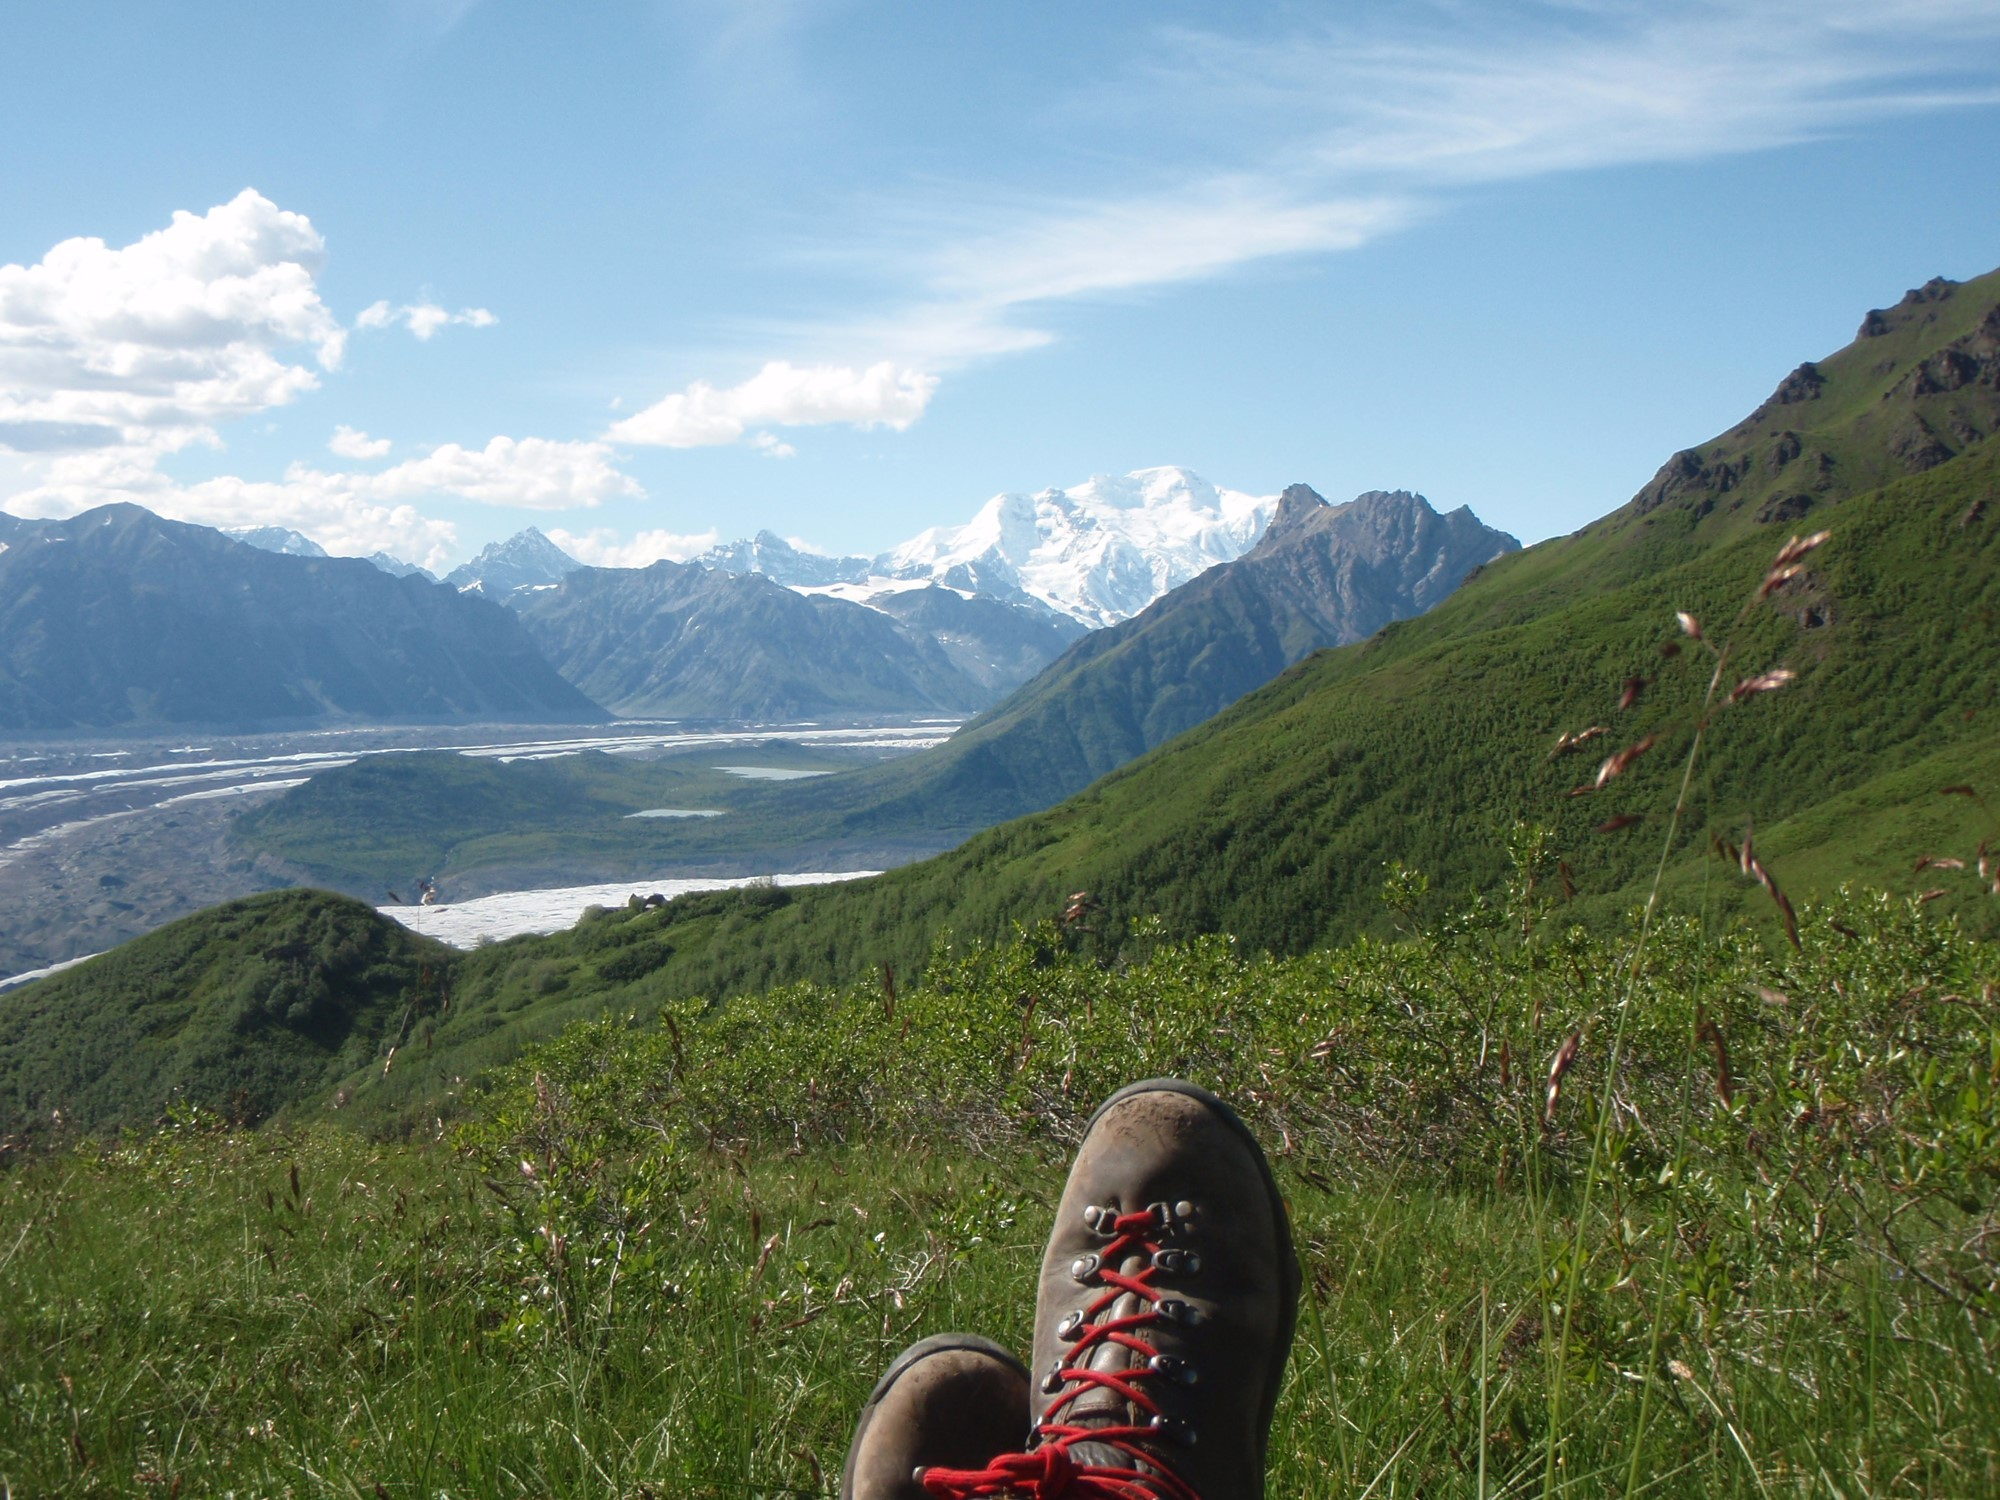 Relaxing few of an Alaskan valley with a pair of hiking boots